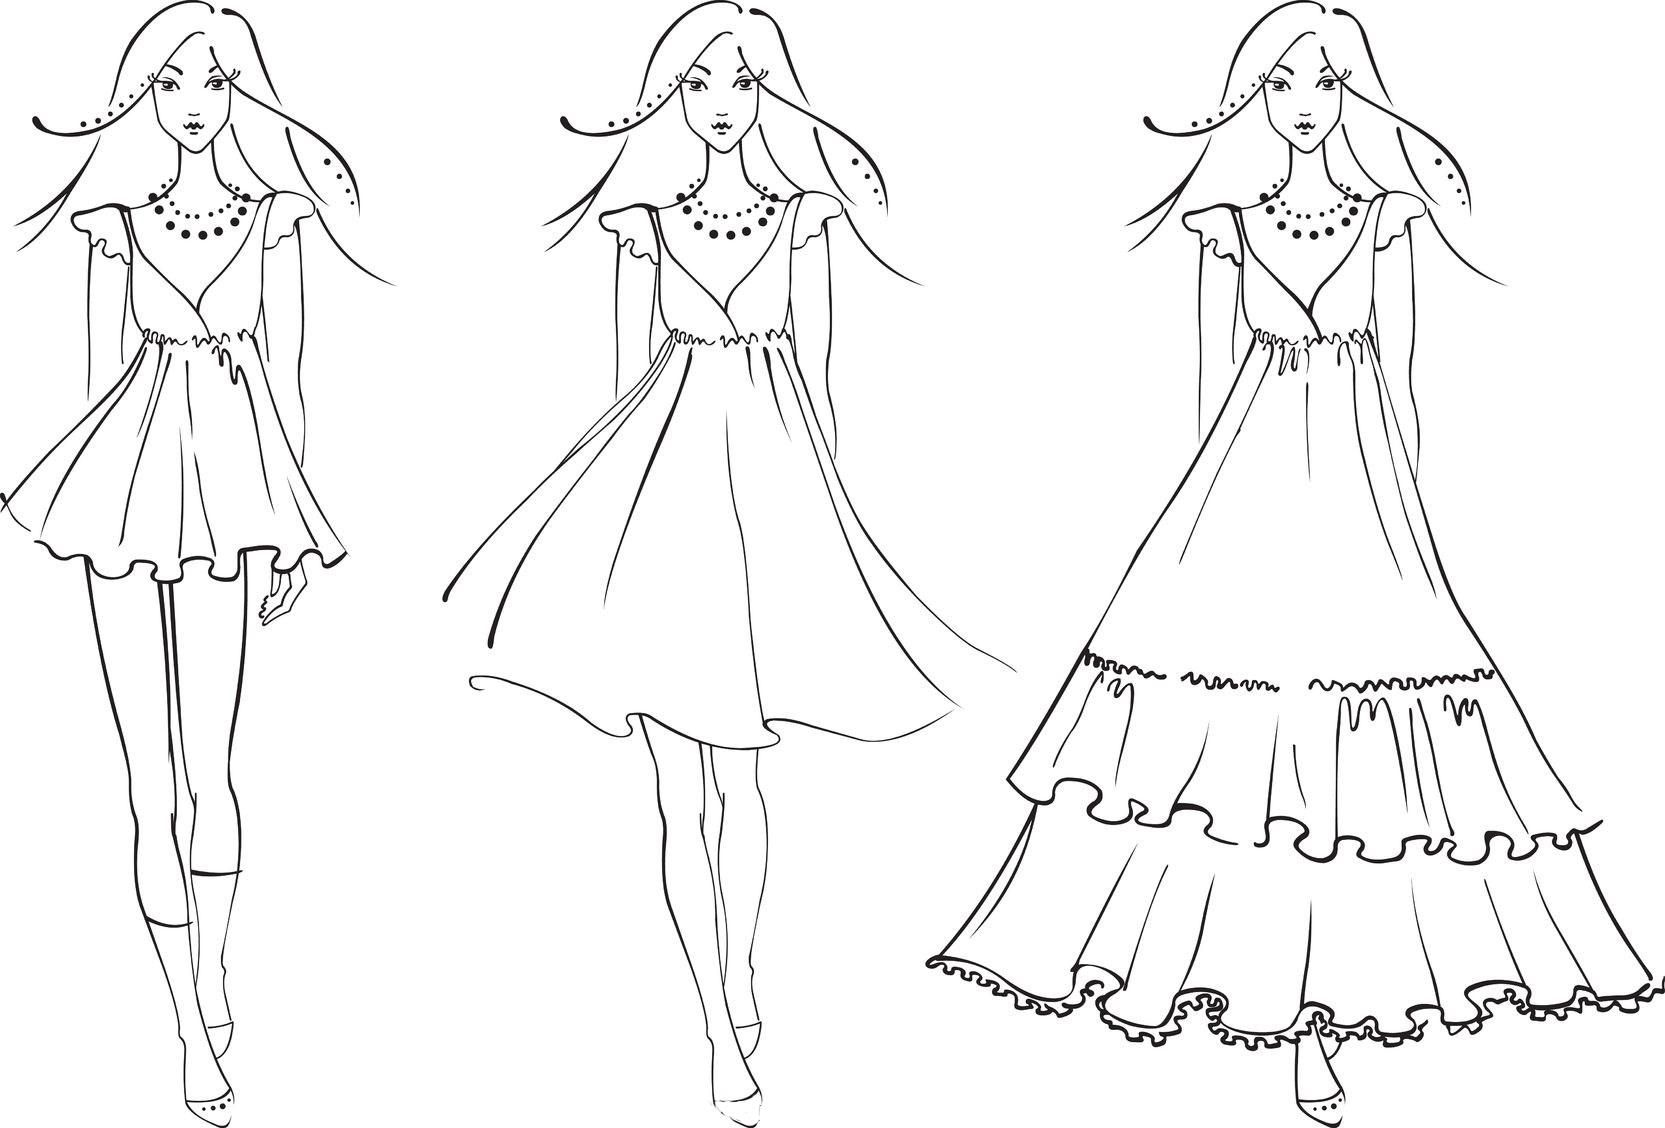 42 Printable Fashion Design Coloring Pages In 2020 Fashion Design Sketches Fashion Design Coloring Book Colorful Fashion